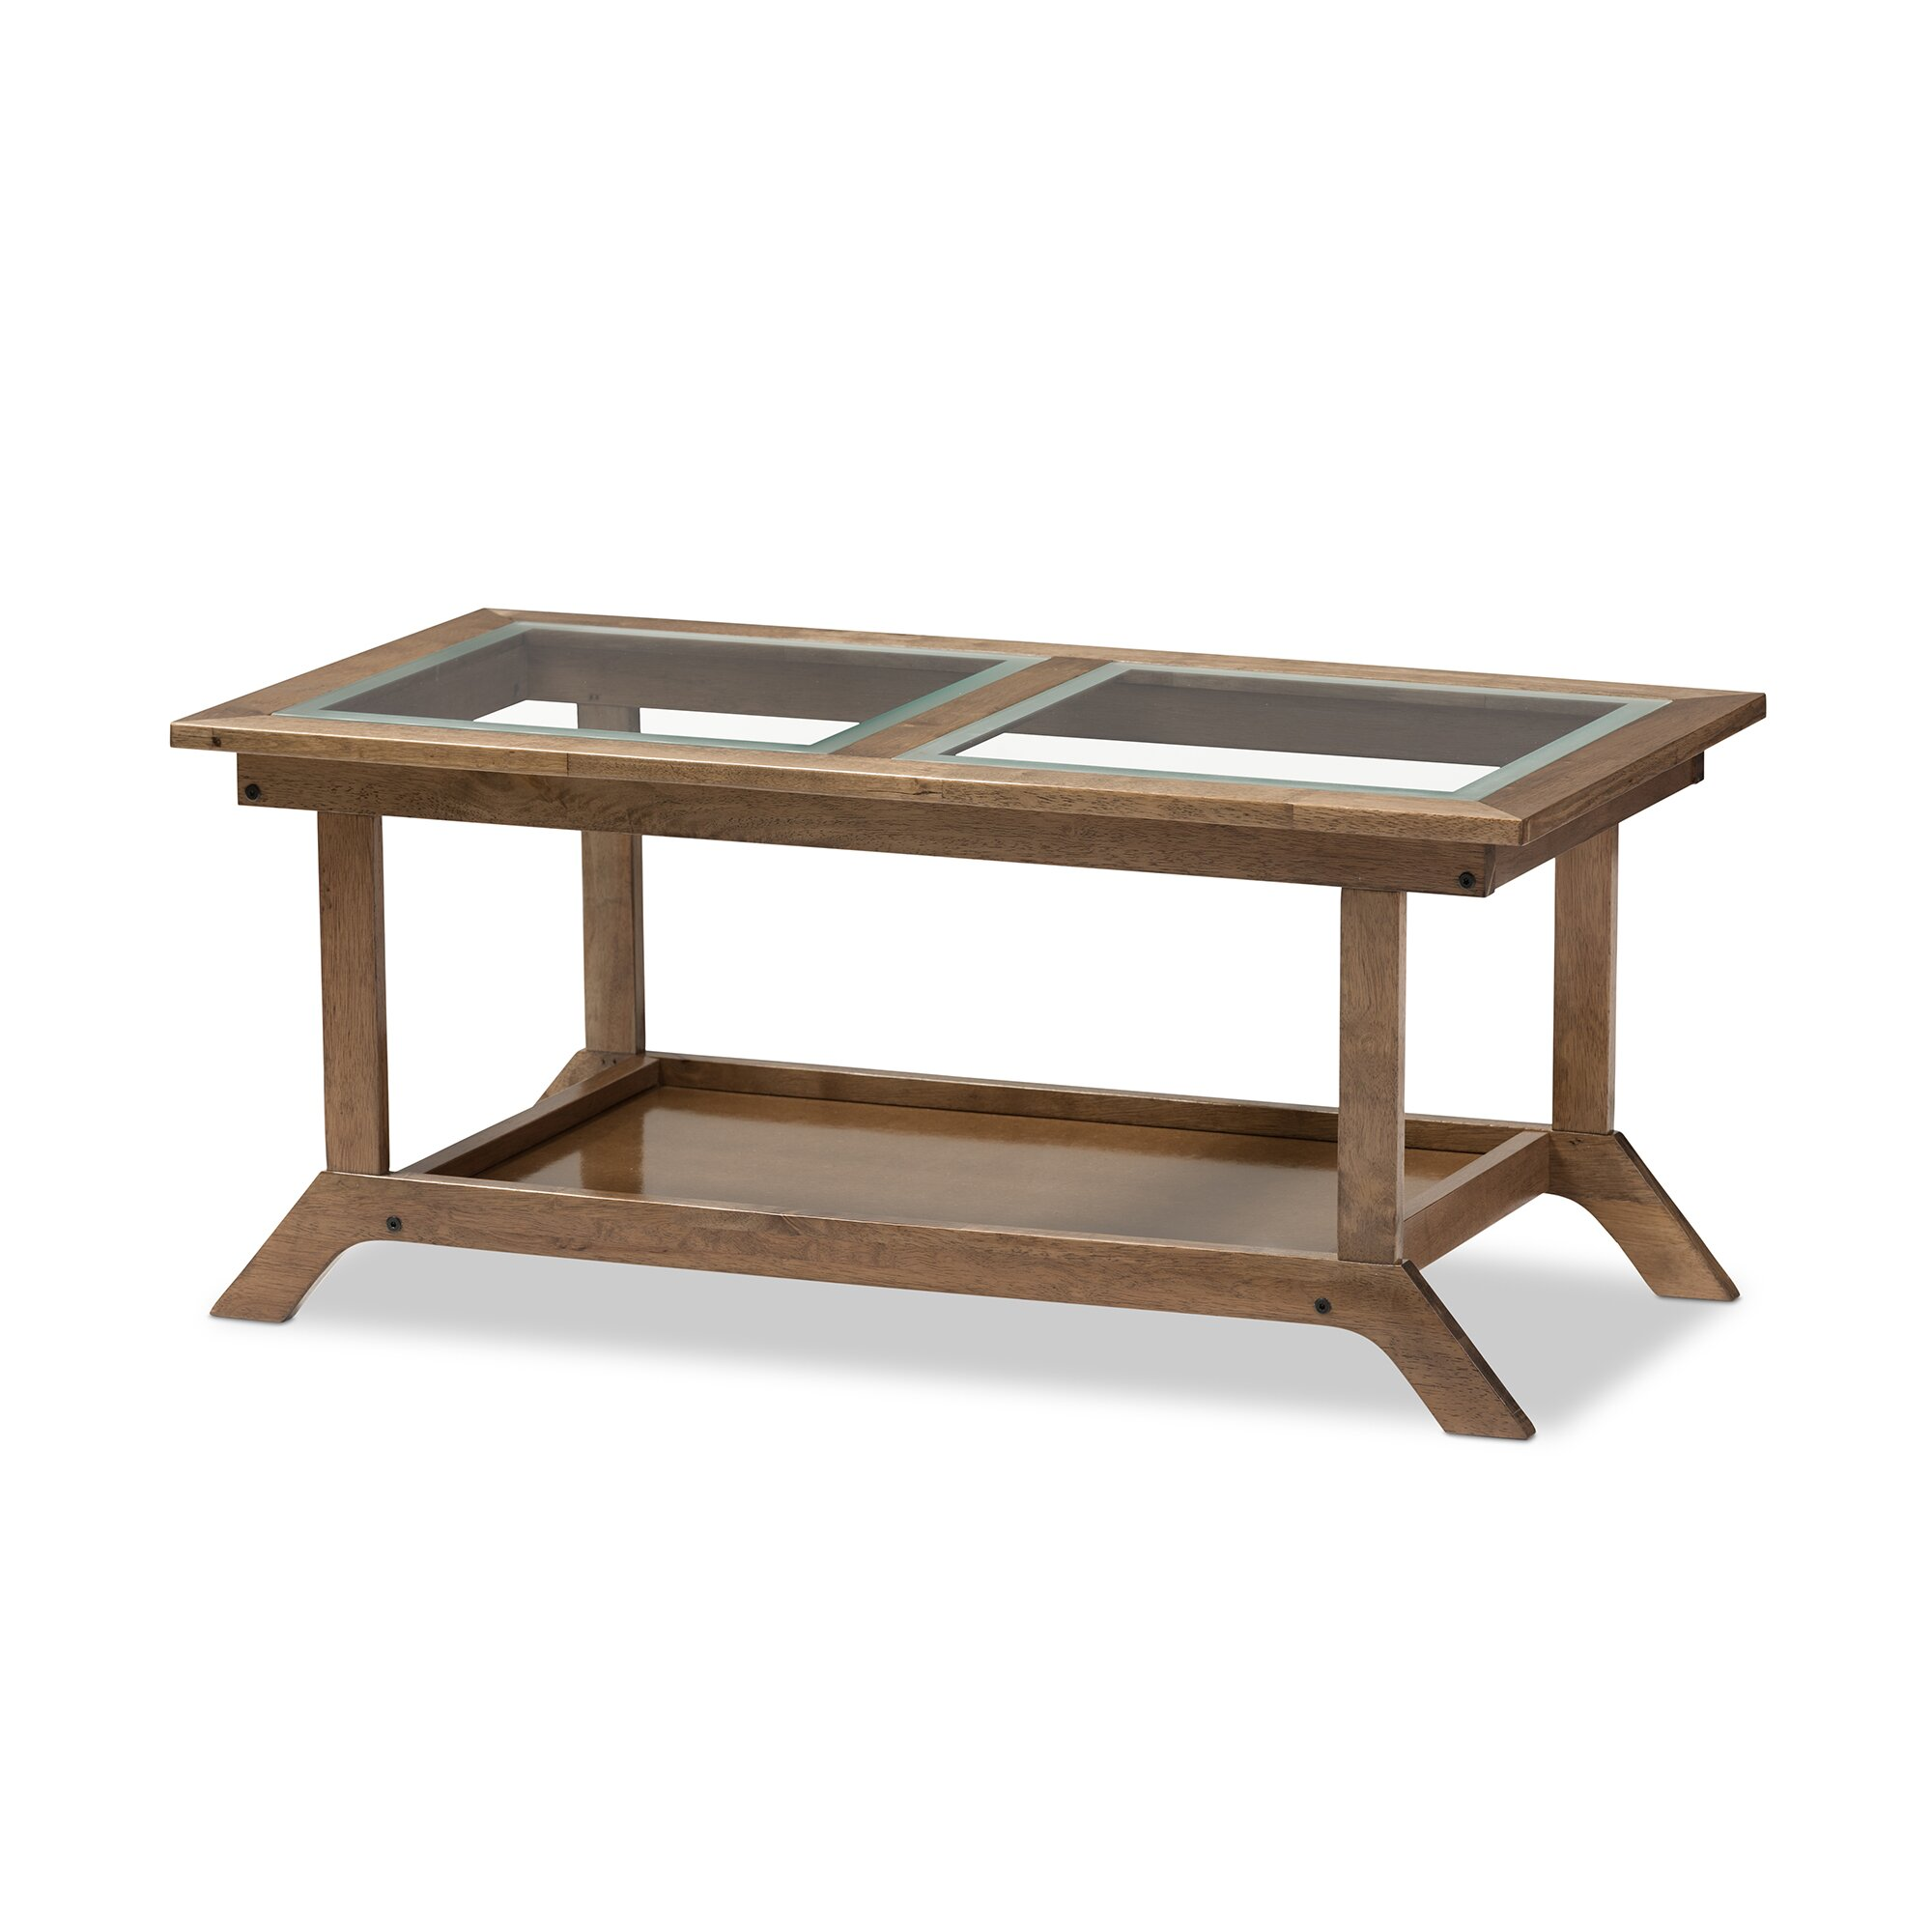 Https Www Wayfair Com Wholesale Interiors Baxton Studio Coffee Table Whi7538 Html